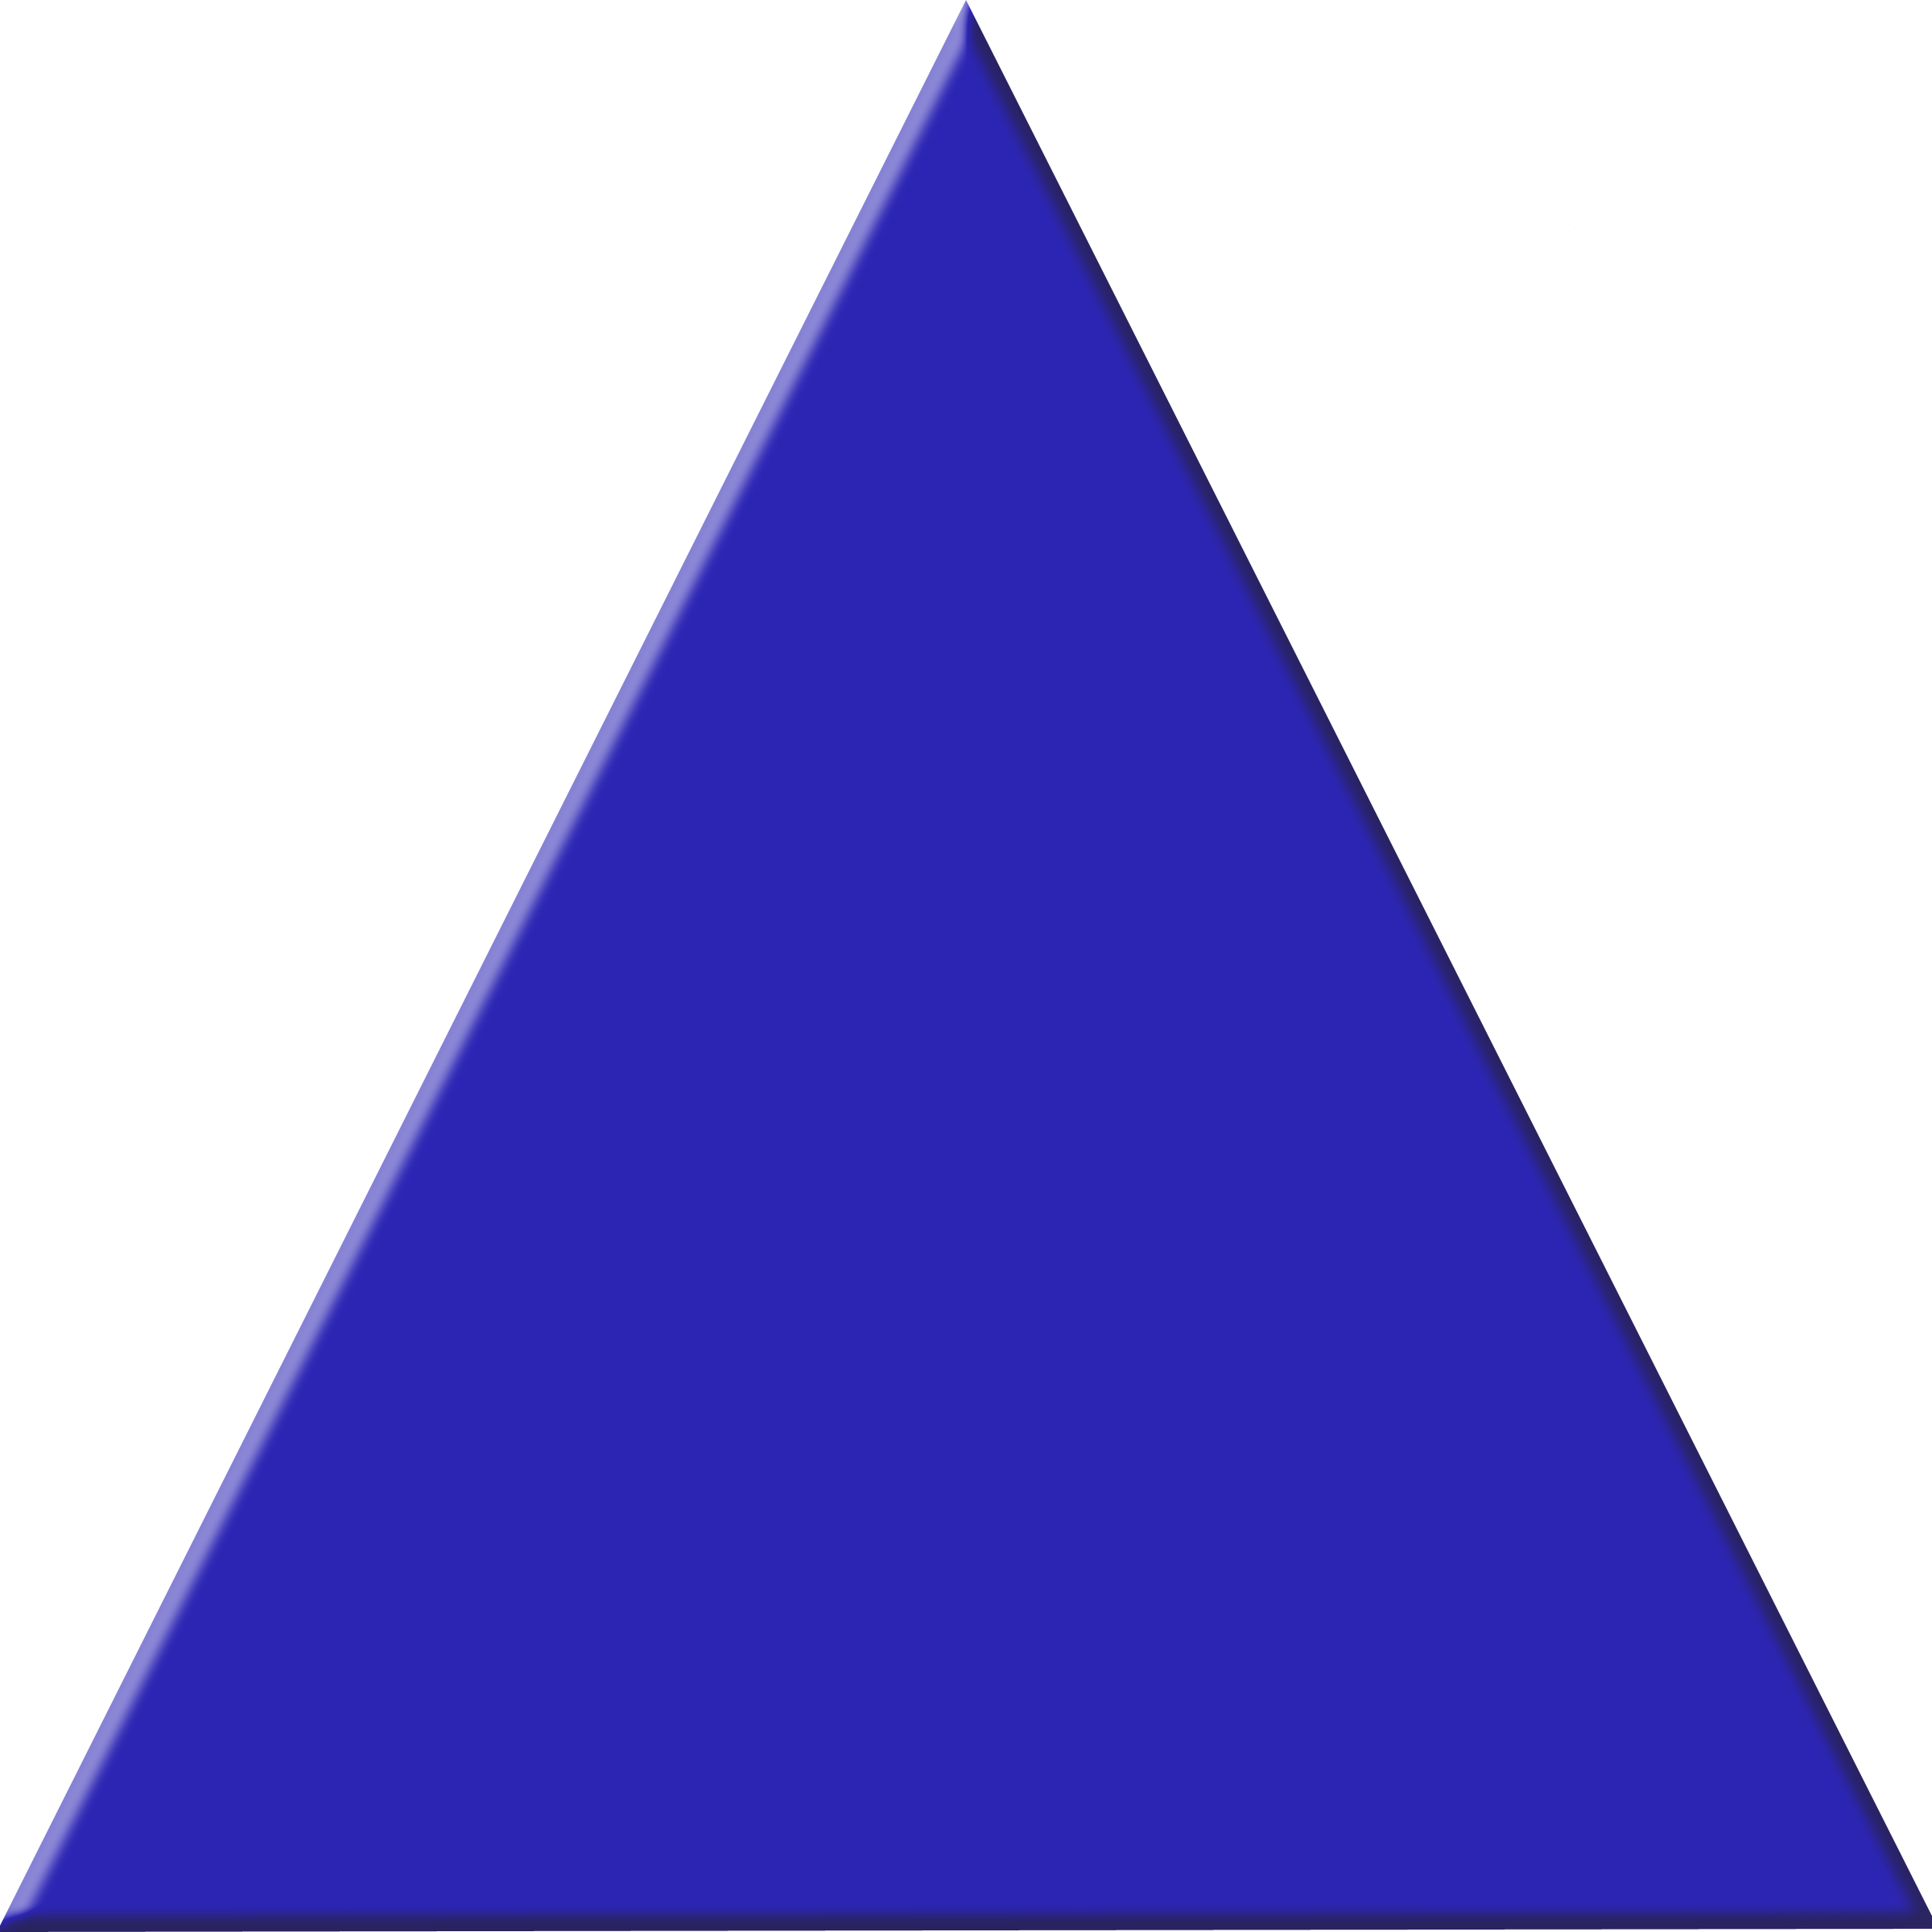 Free clipart triangle. Blue images at clker